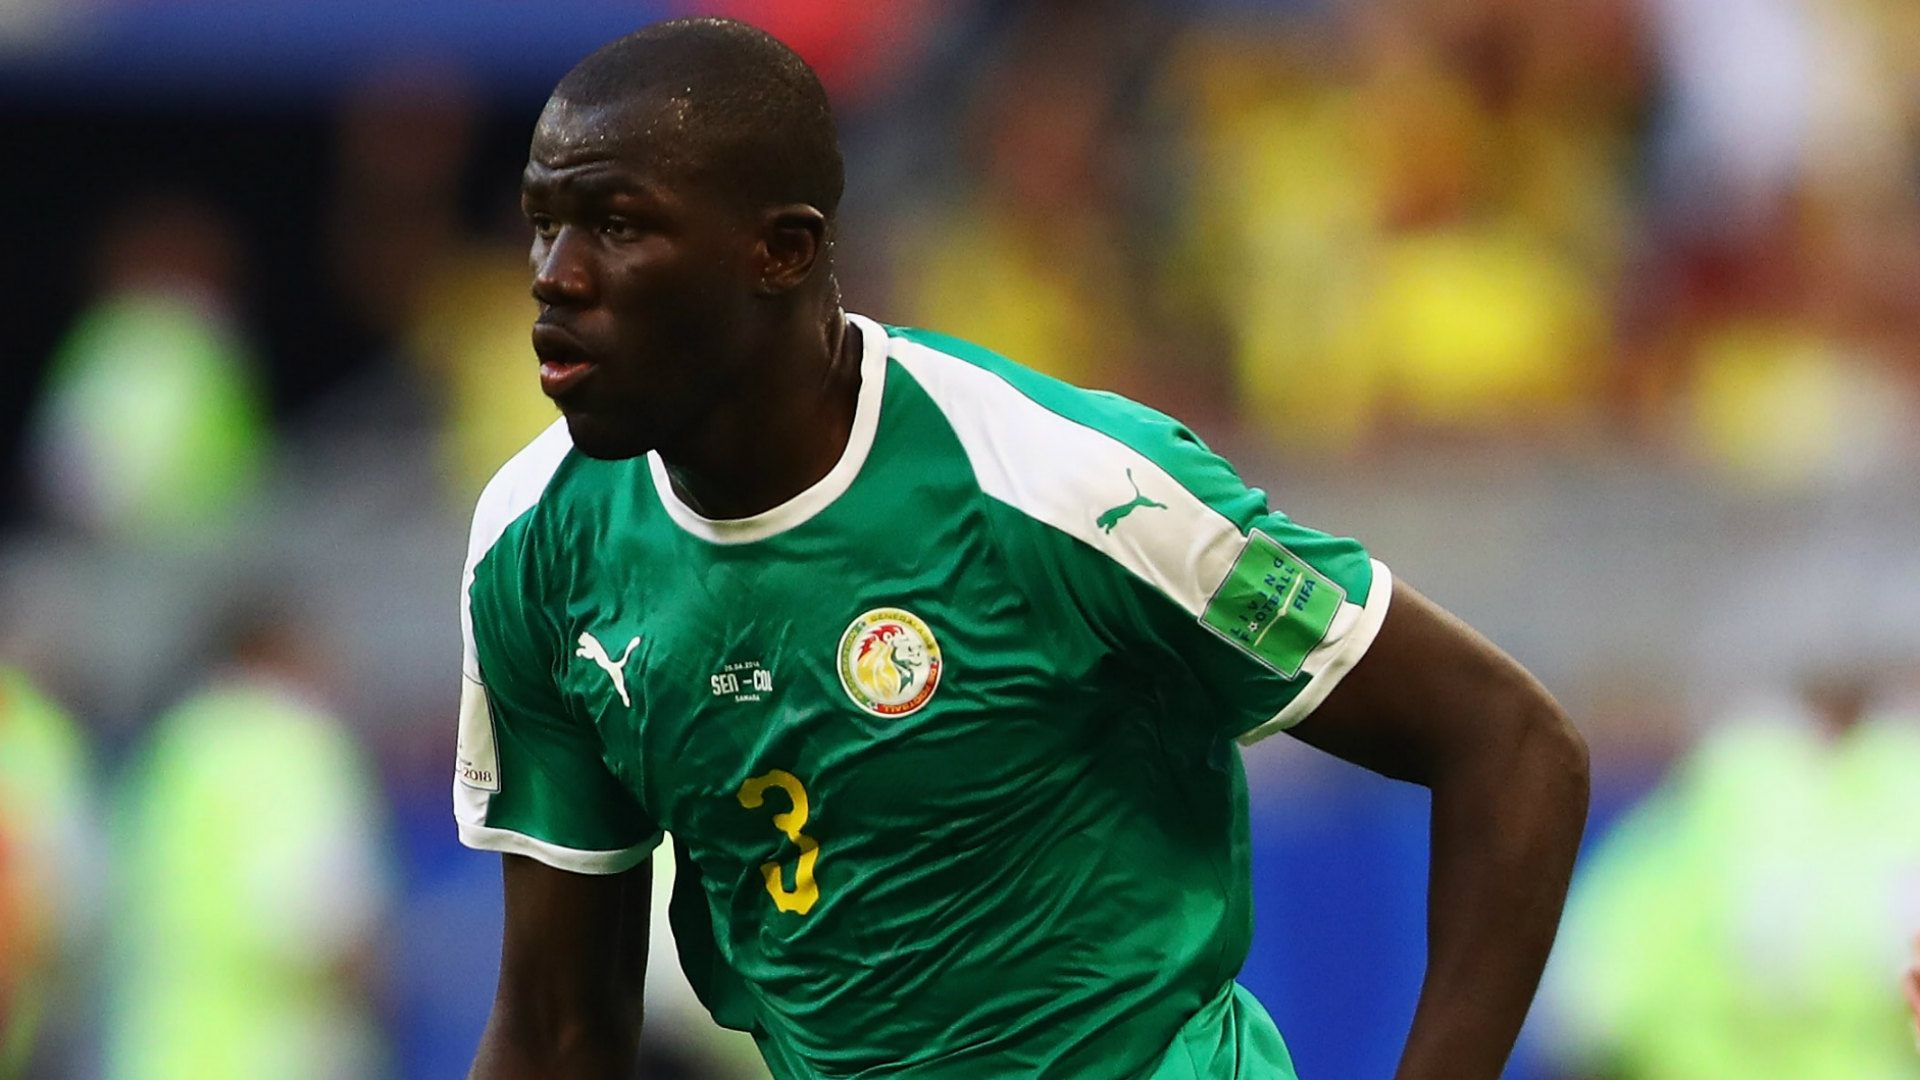 Afcon 2019: Senegal will play final in honour of Kalidou Koulibaly - Badou Ndiaye